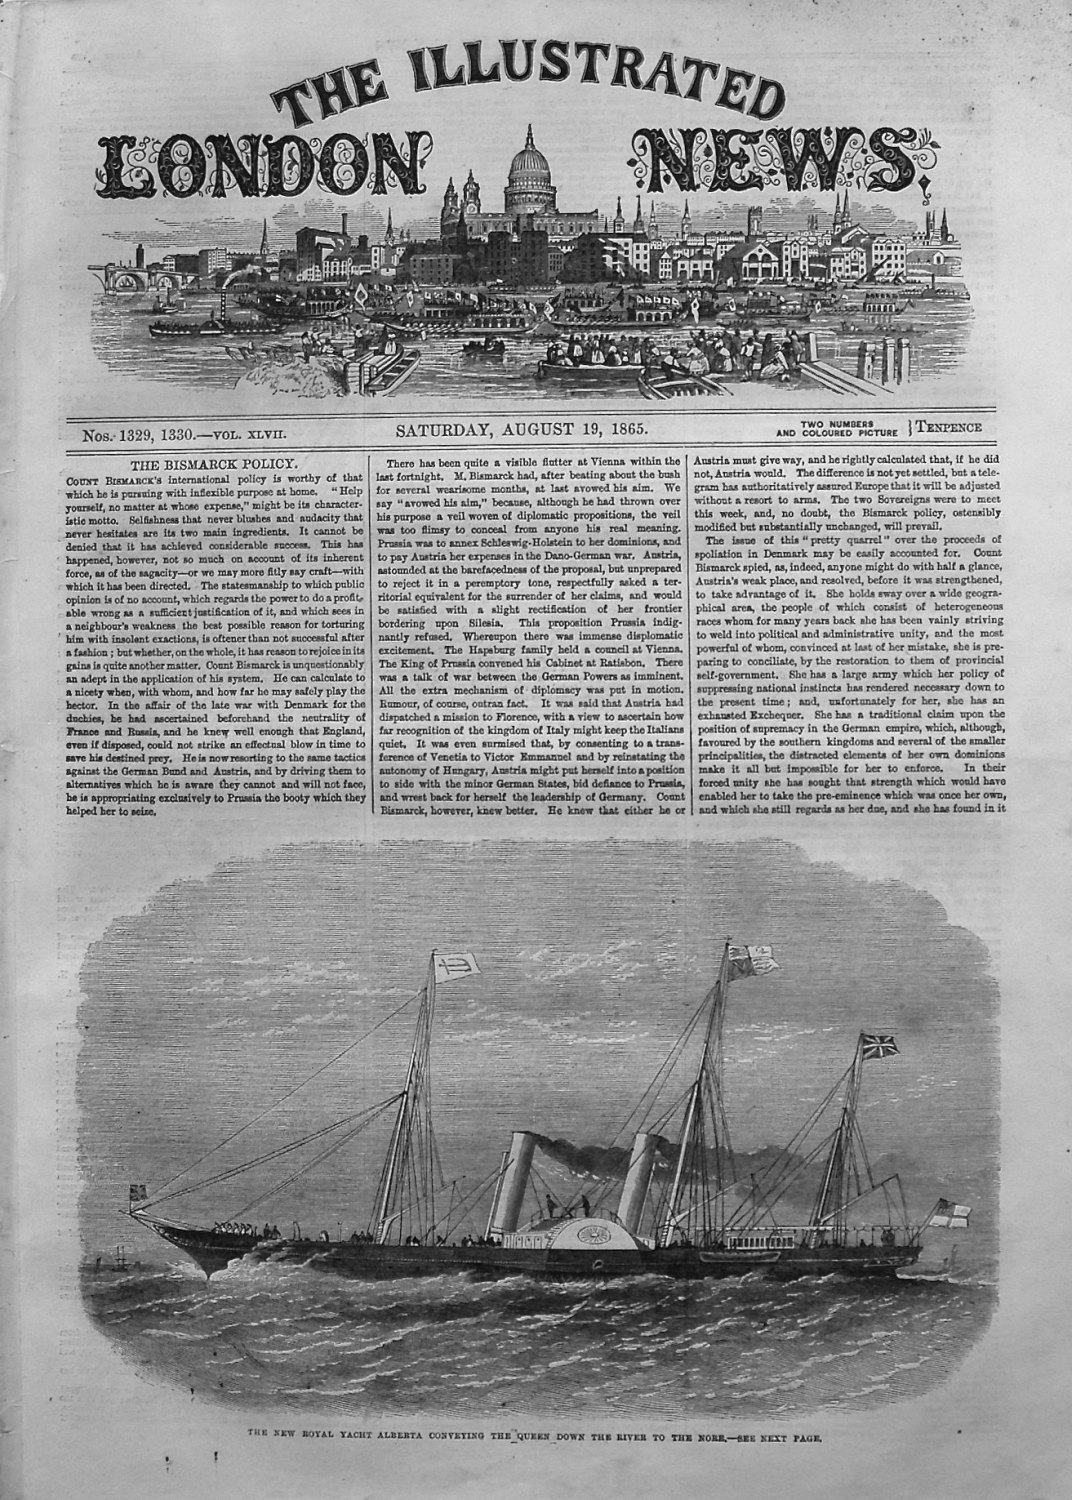 Illustrated London News August 19th 1865.